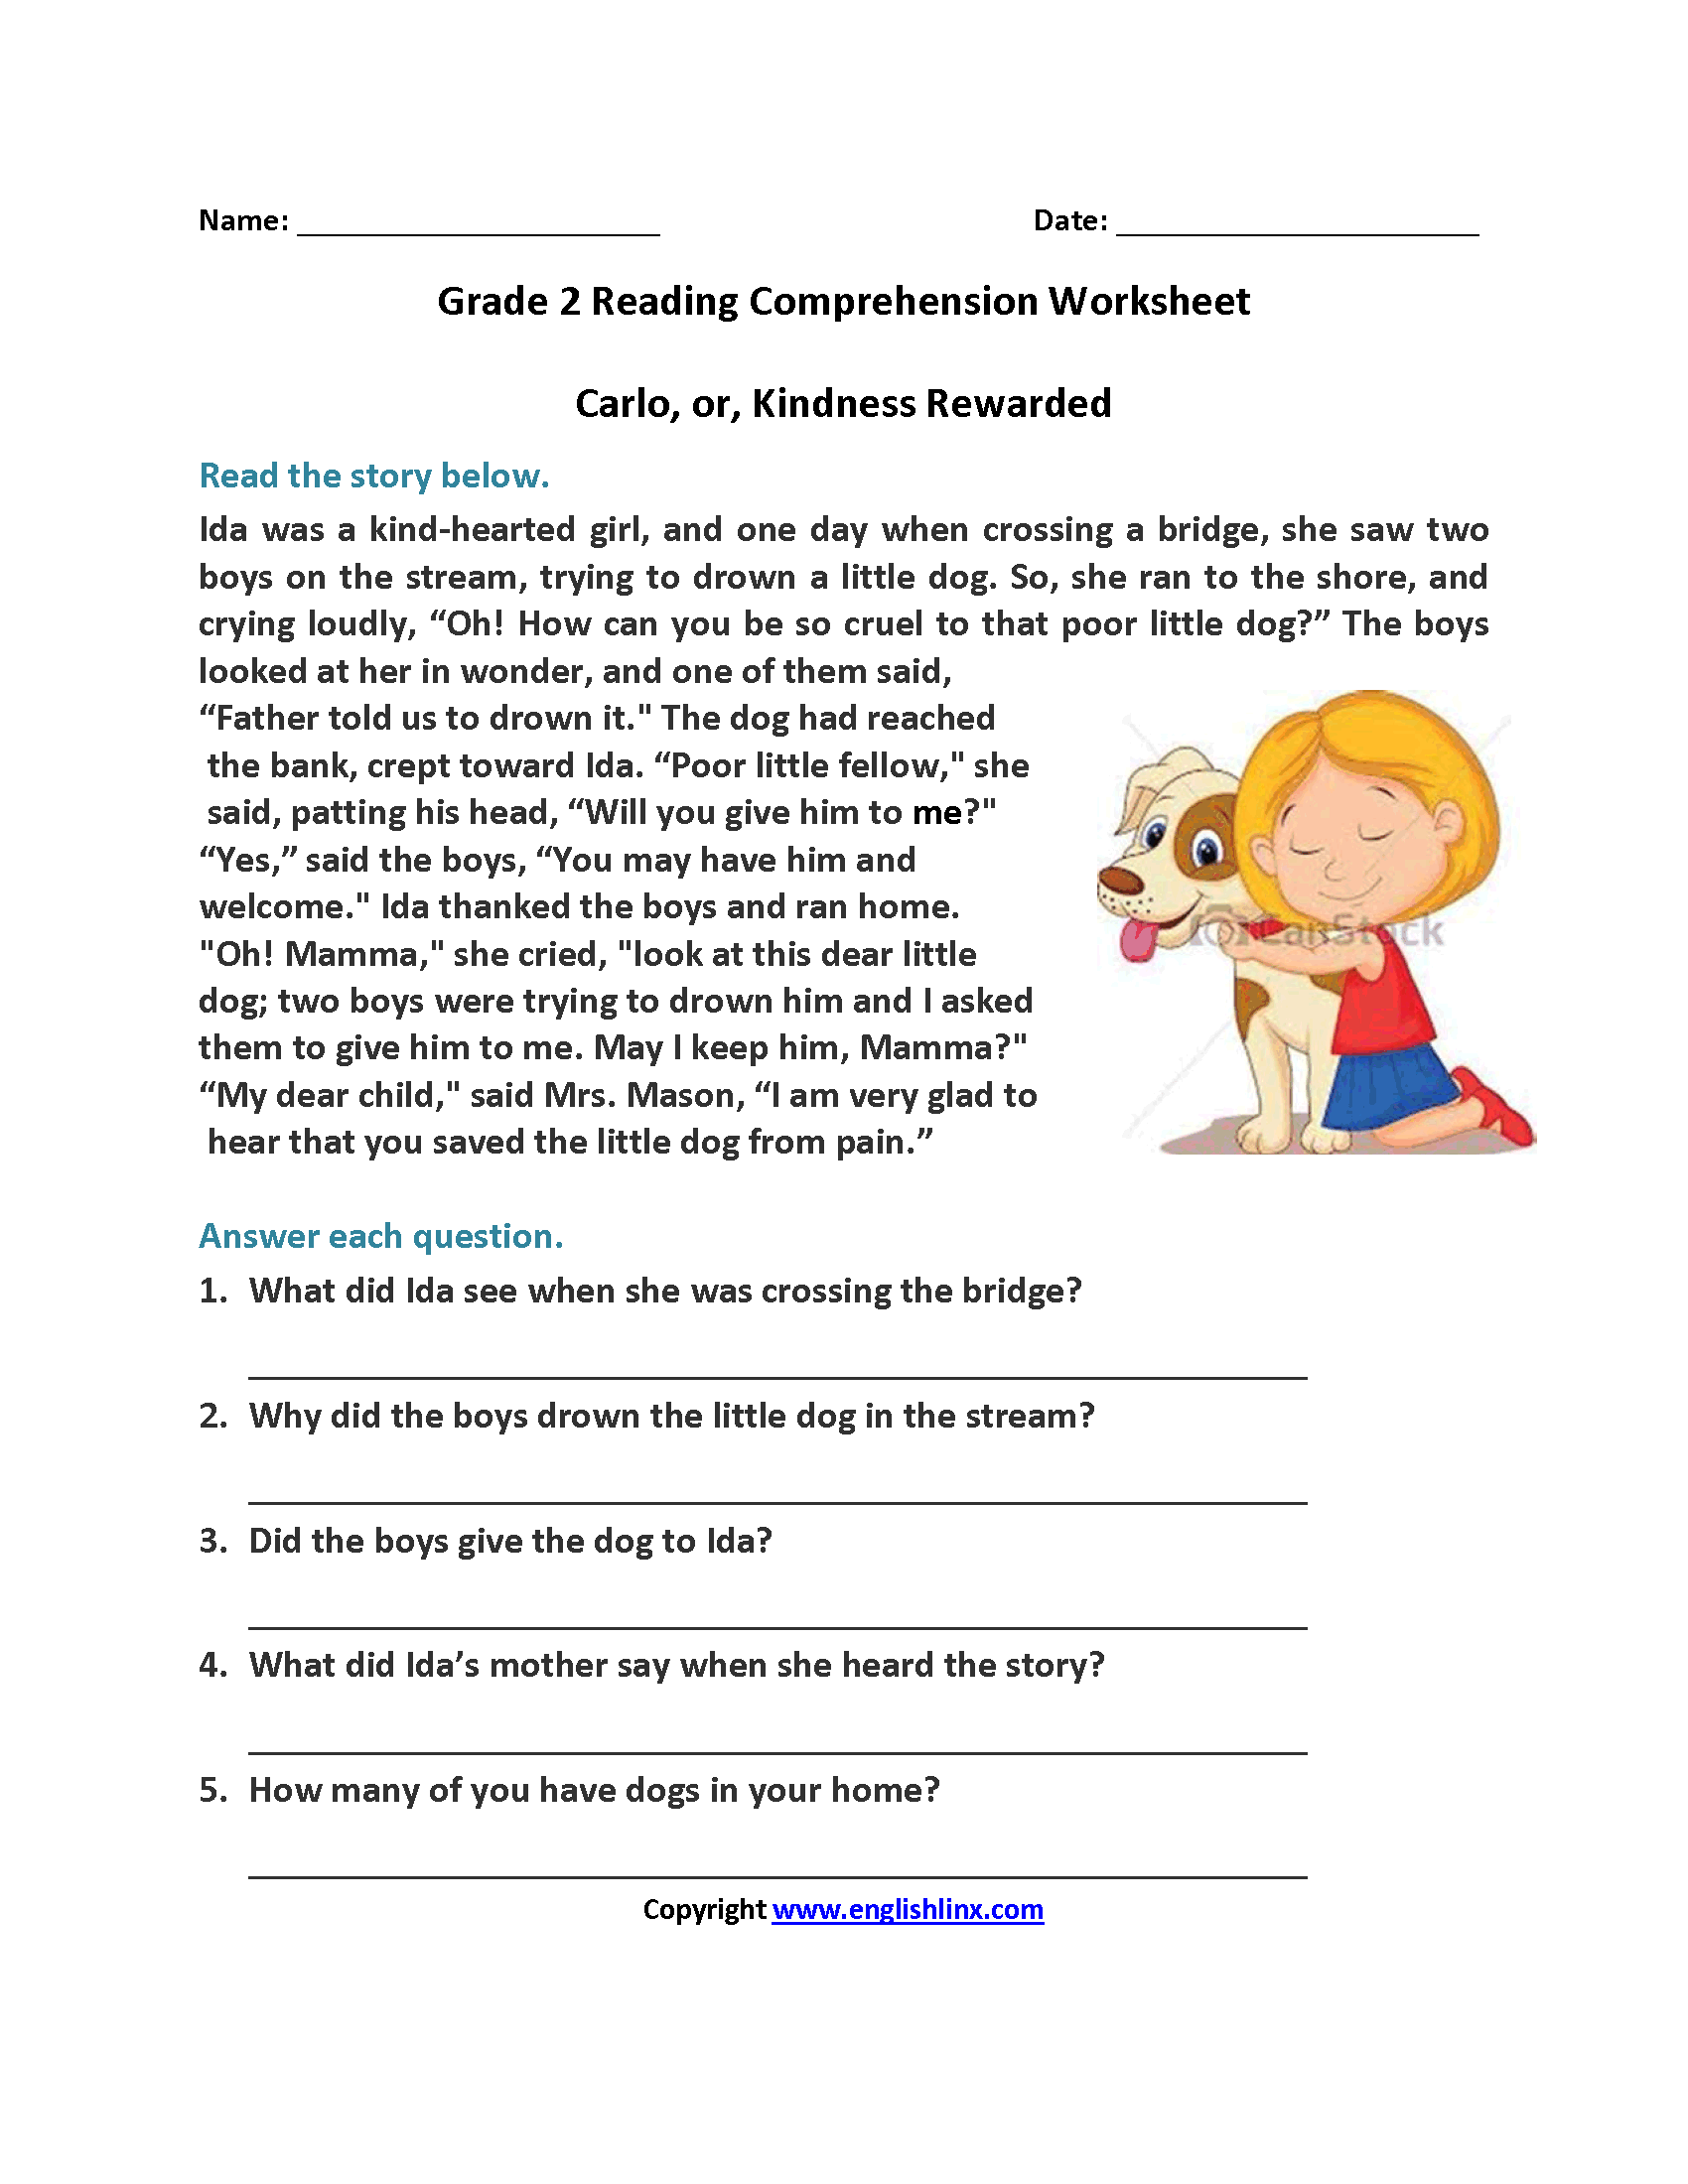 Worksheet Comprehension Passages For Grade 2 carlo or kindness rewarded second grade reading worksheets worksheets